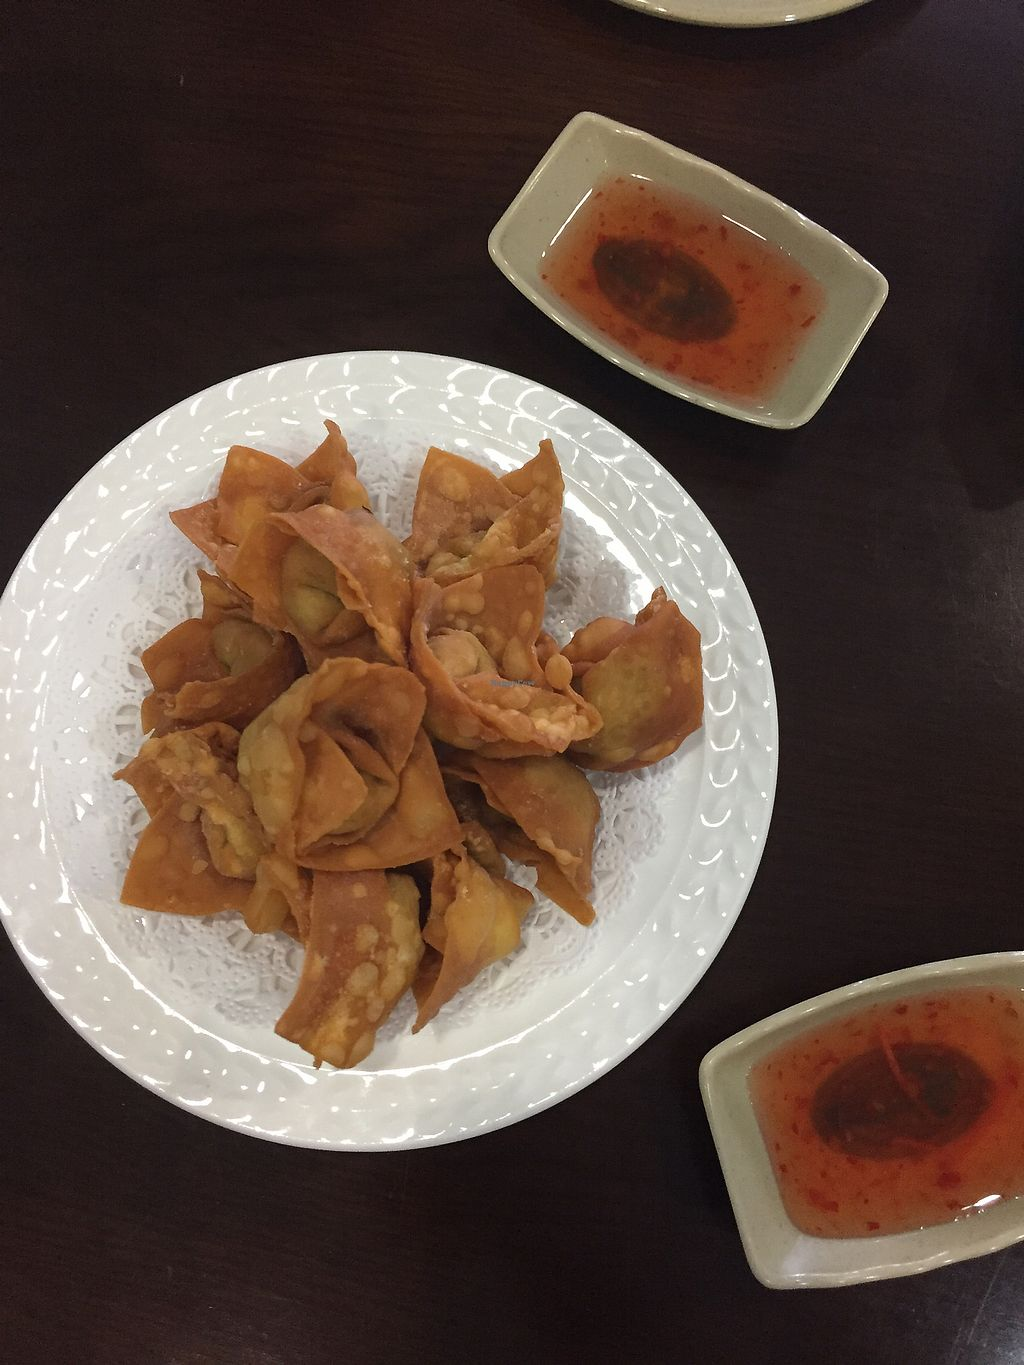 """Photo of Chen Vegetarian House  by <a href=""""/members/profile/katethevegan"""">katethevegan</a> <br/>fried wonton <br/> August 31, 2017  - <a href='/contact/abuse/image/42869/299239'>Report</a>"""